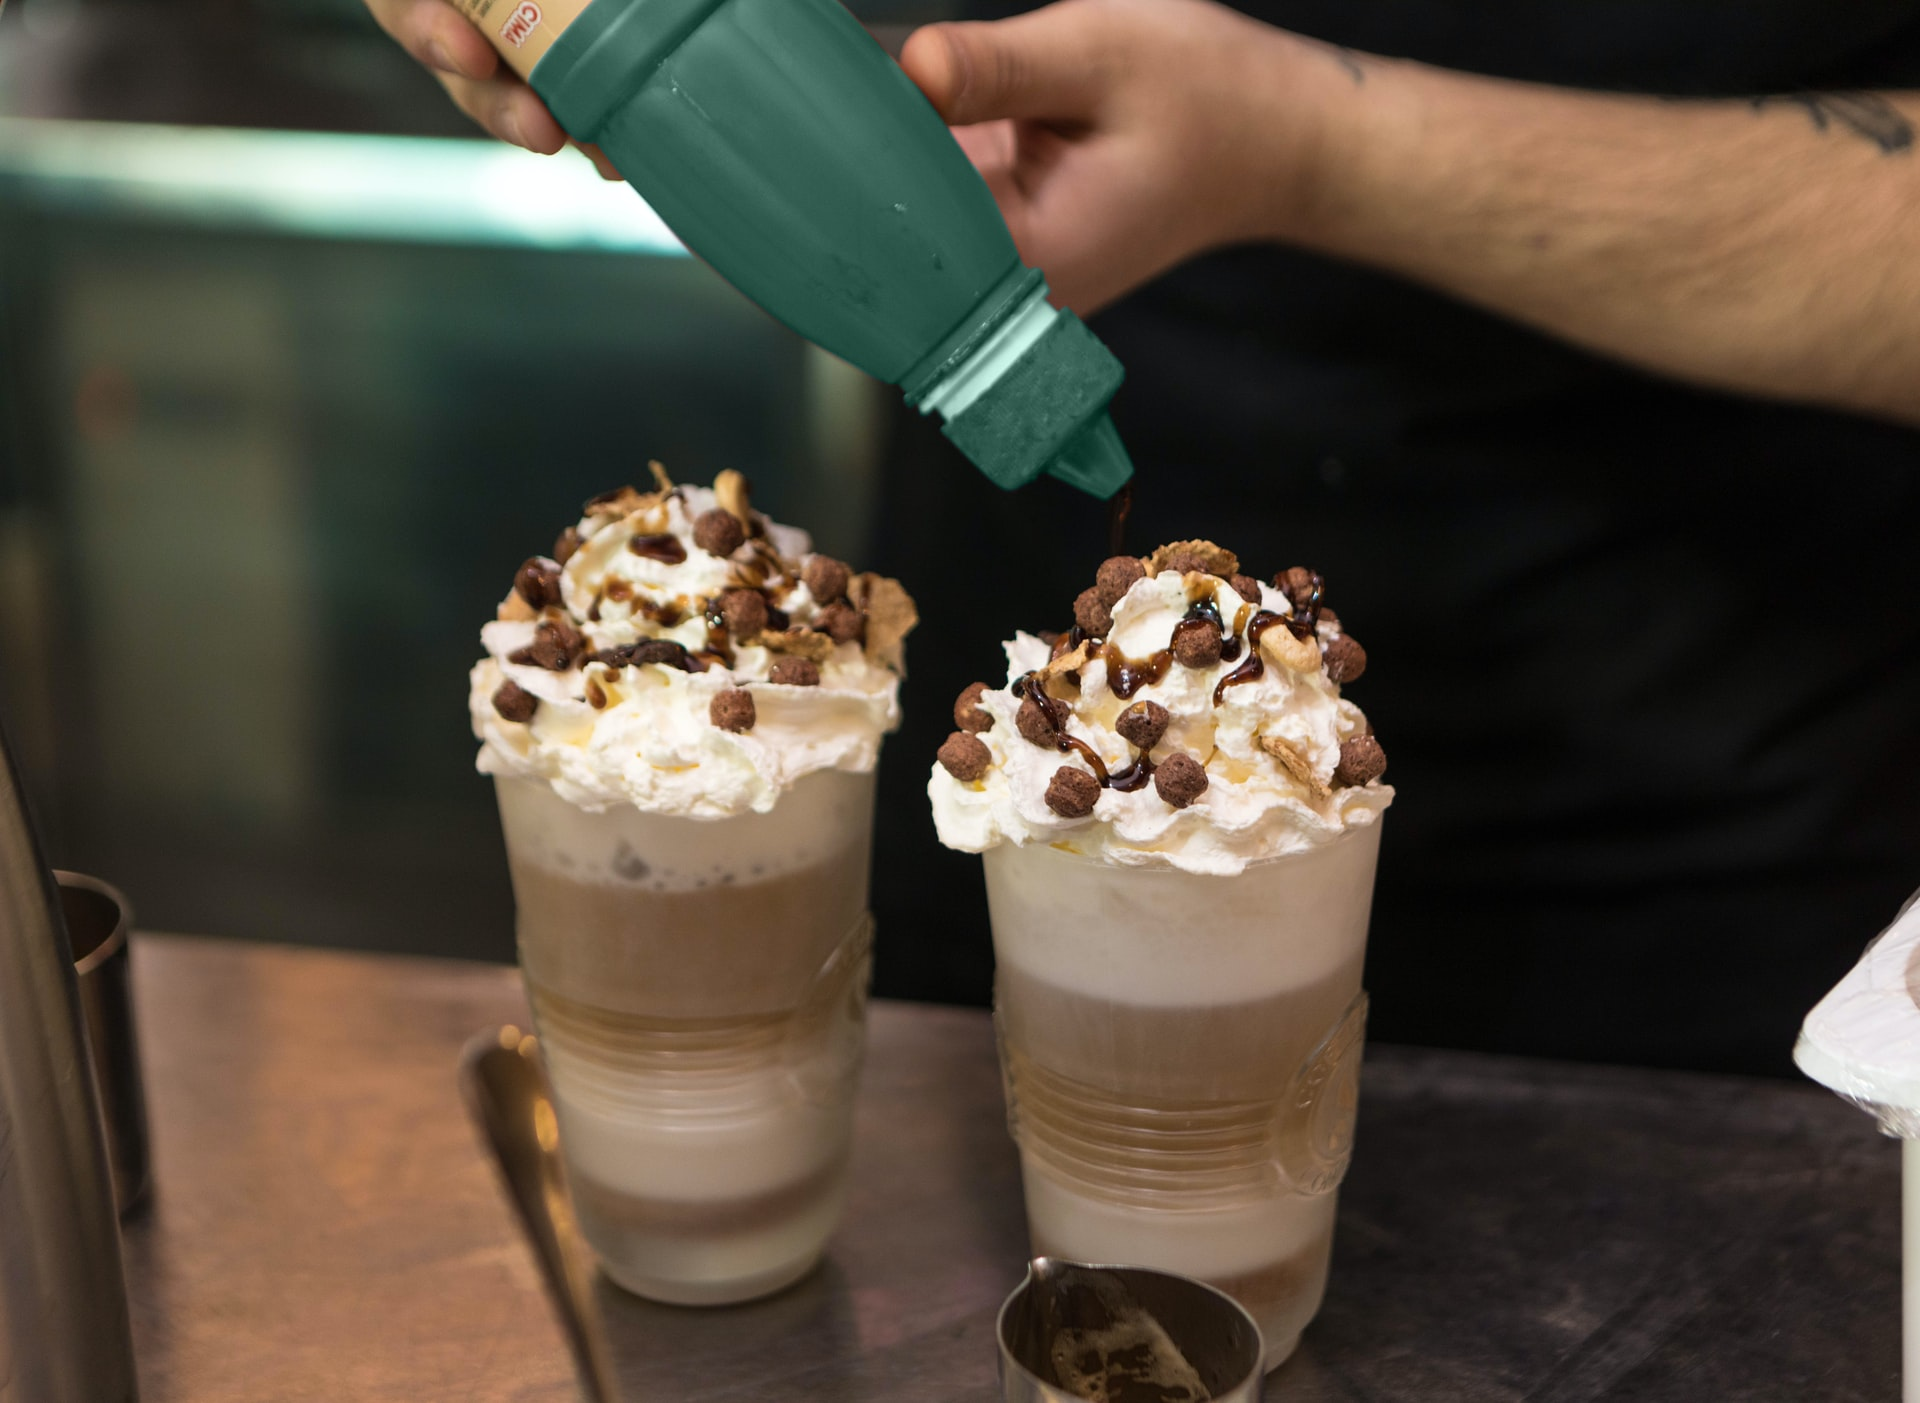 adding chocolate syrup to a coffee drink